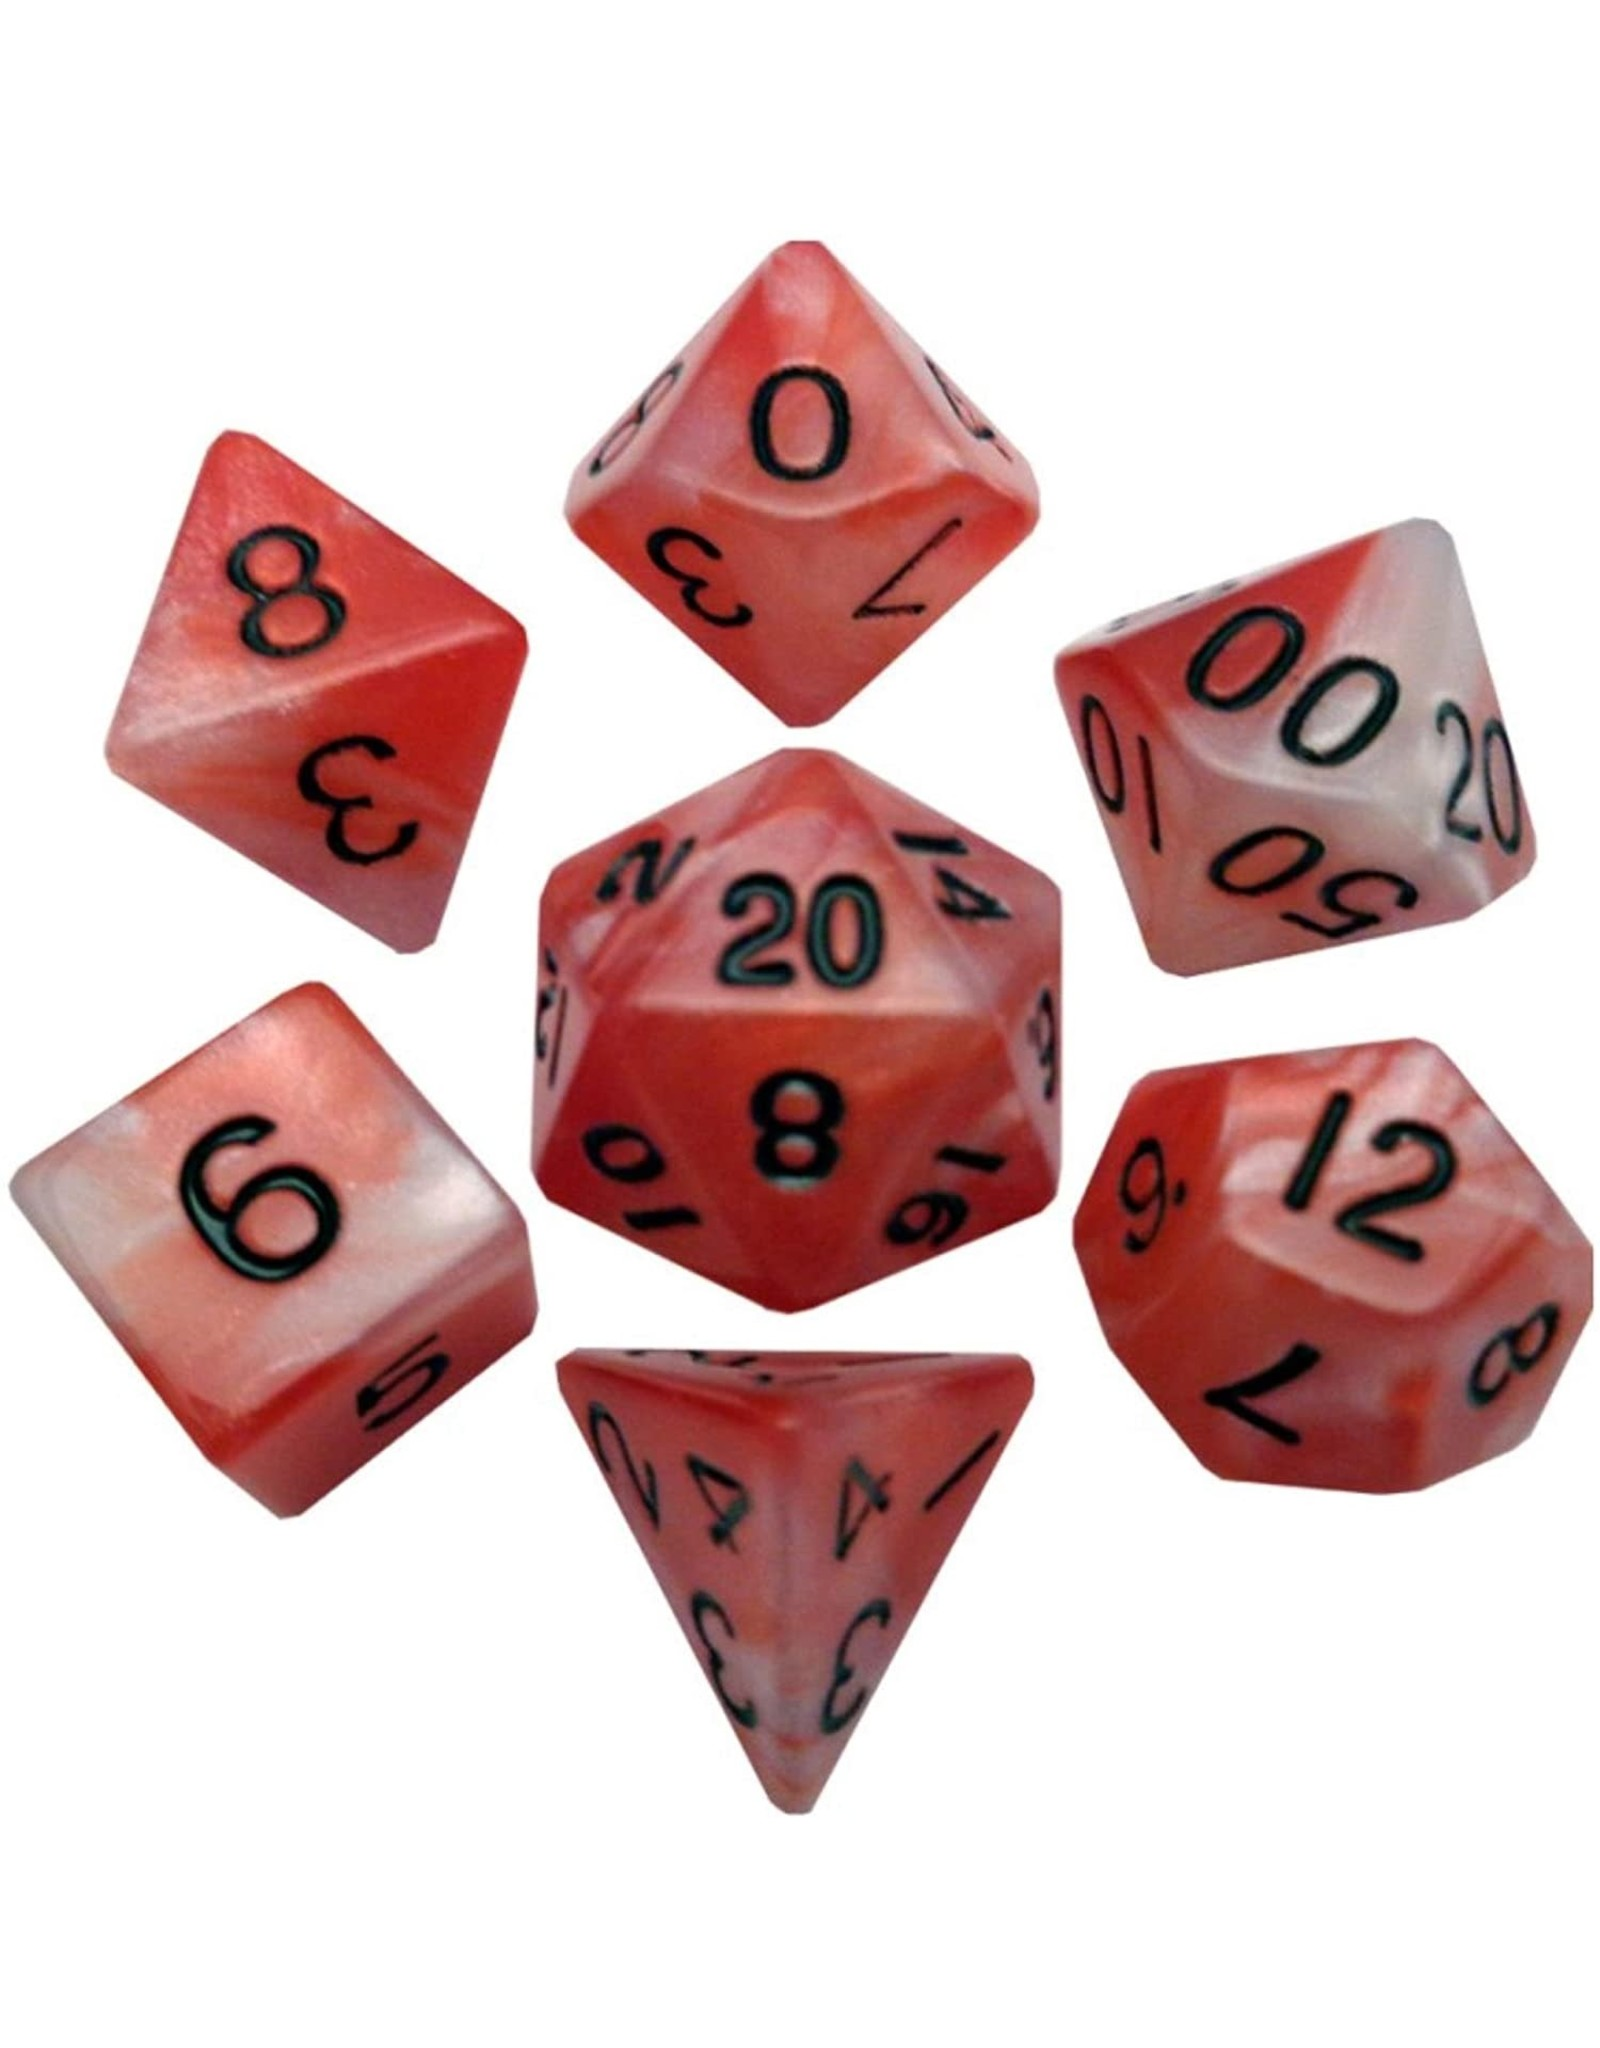 Metallic Dice Games 16mm Polyhedral Dice Set Combo Attack Red/White w/ Black Numbers